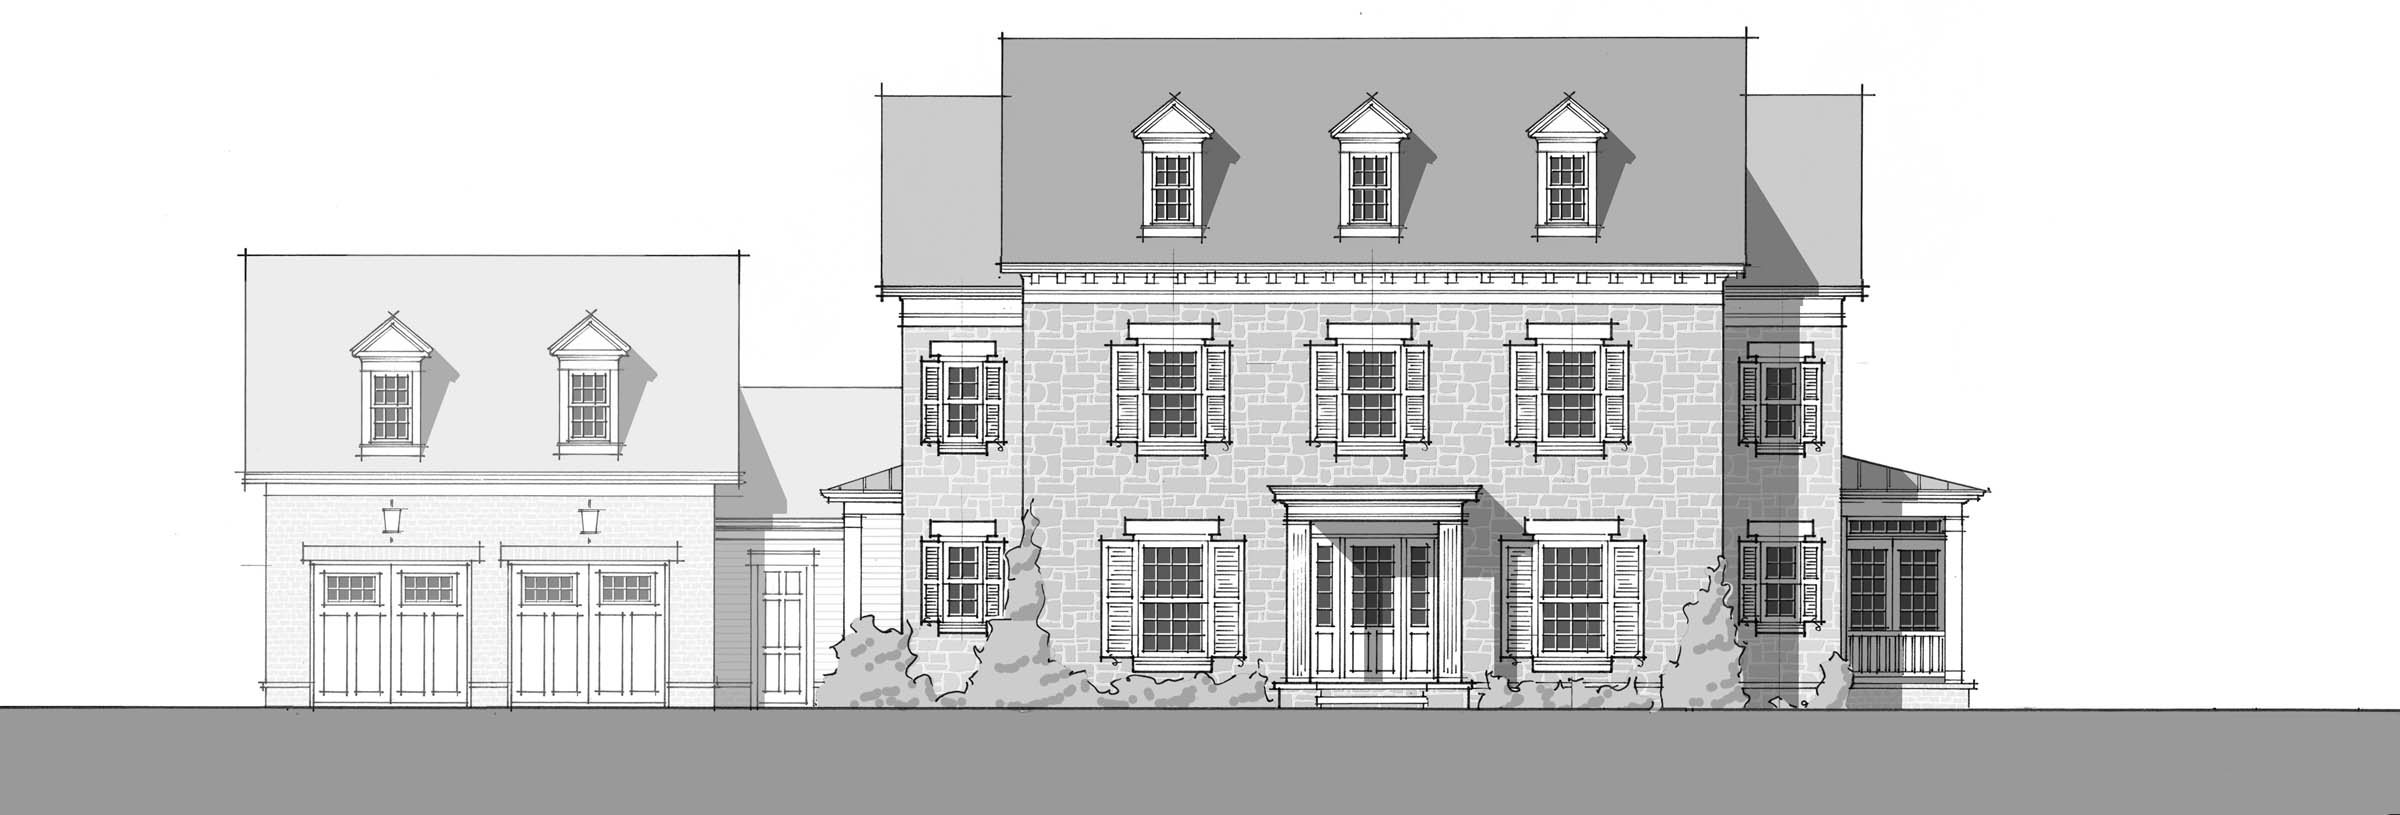 Colonial Revival 1969 - Front Elevation_2400